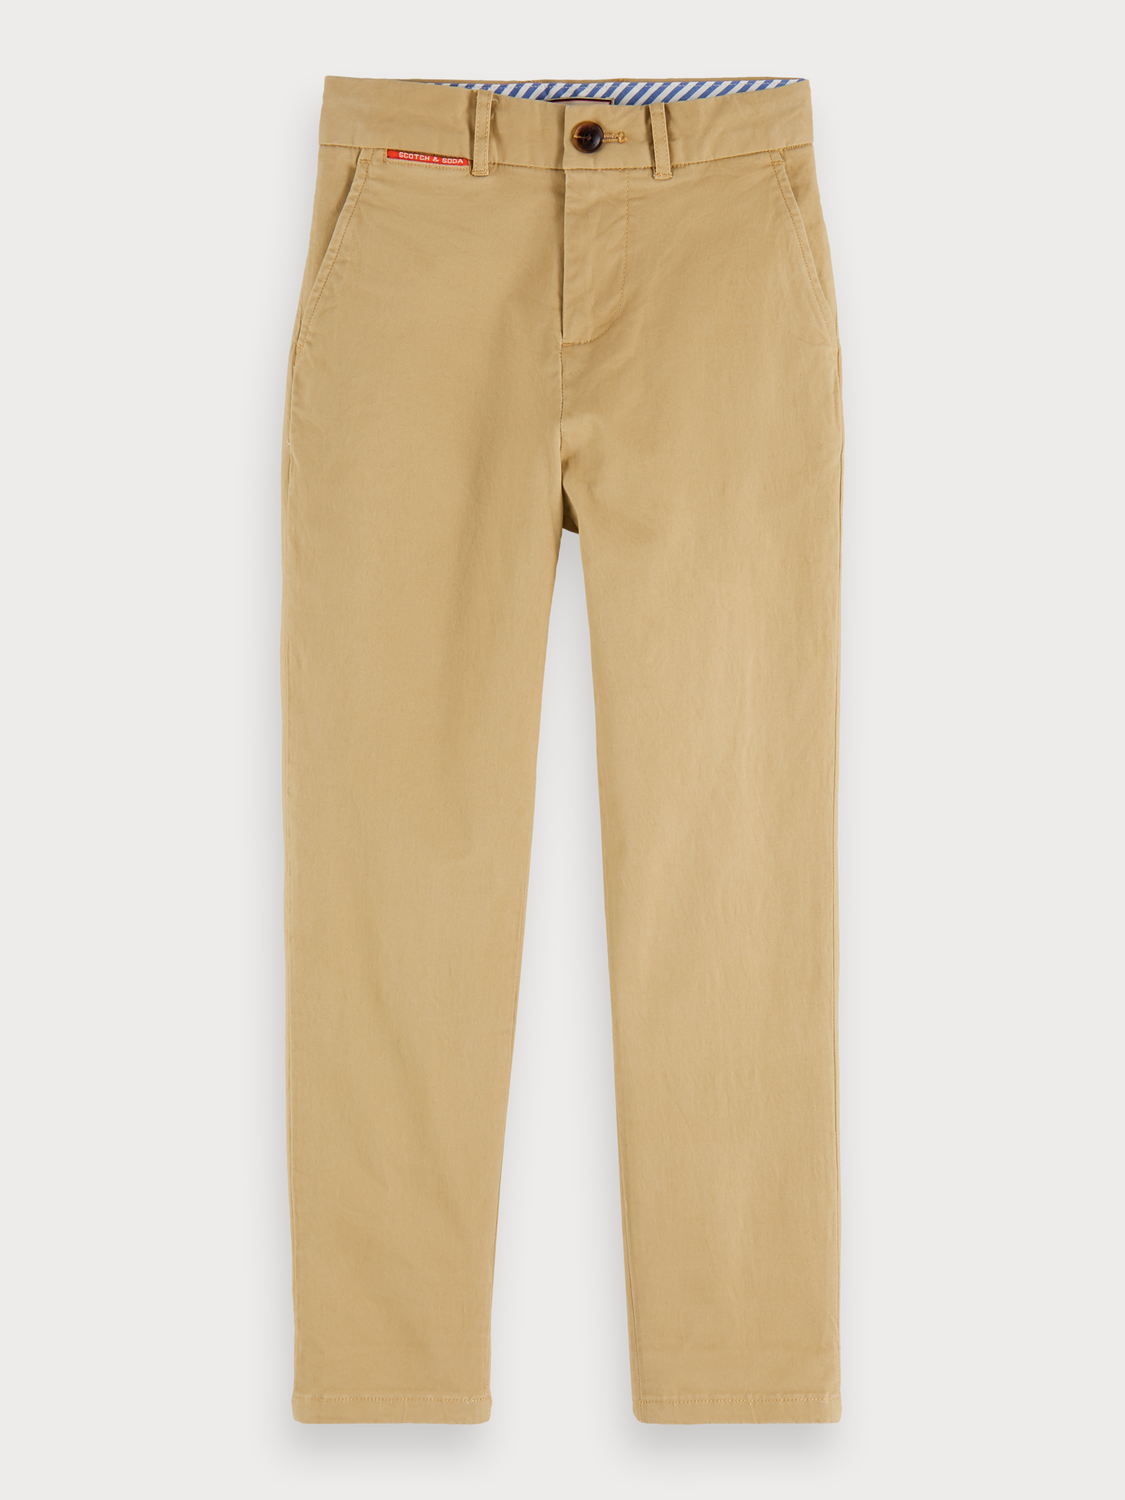 Boys Peached cotton chinos